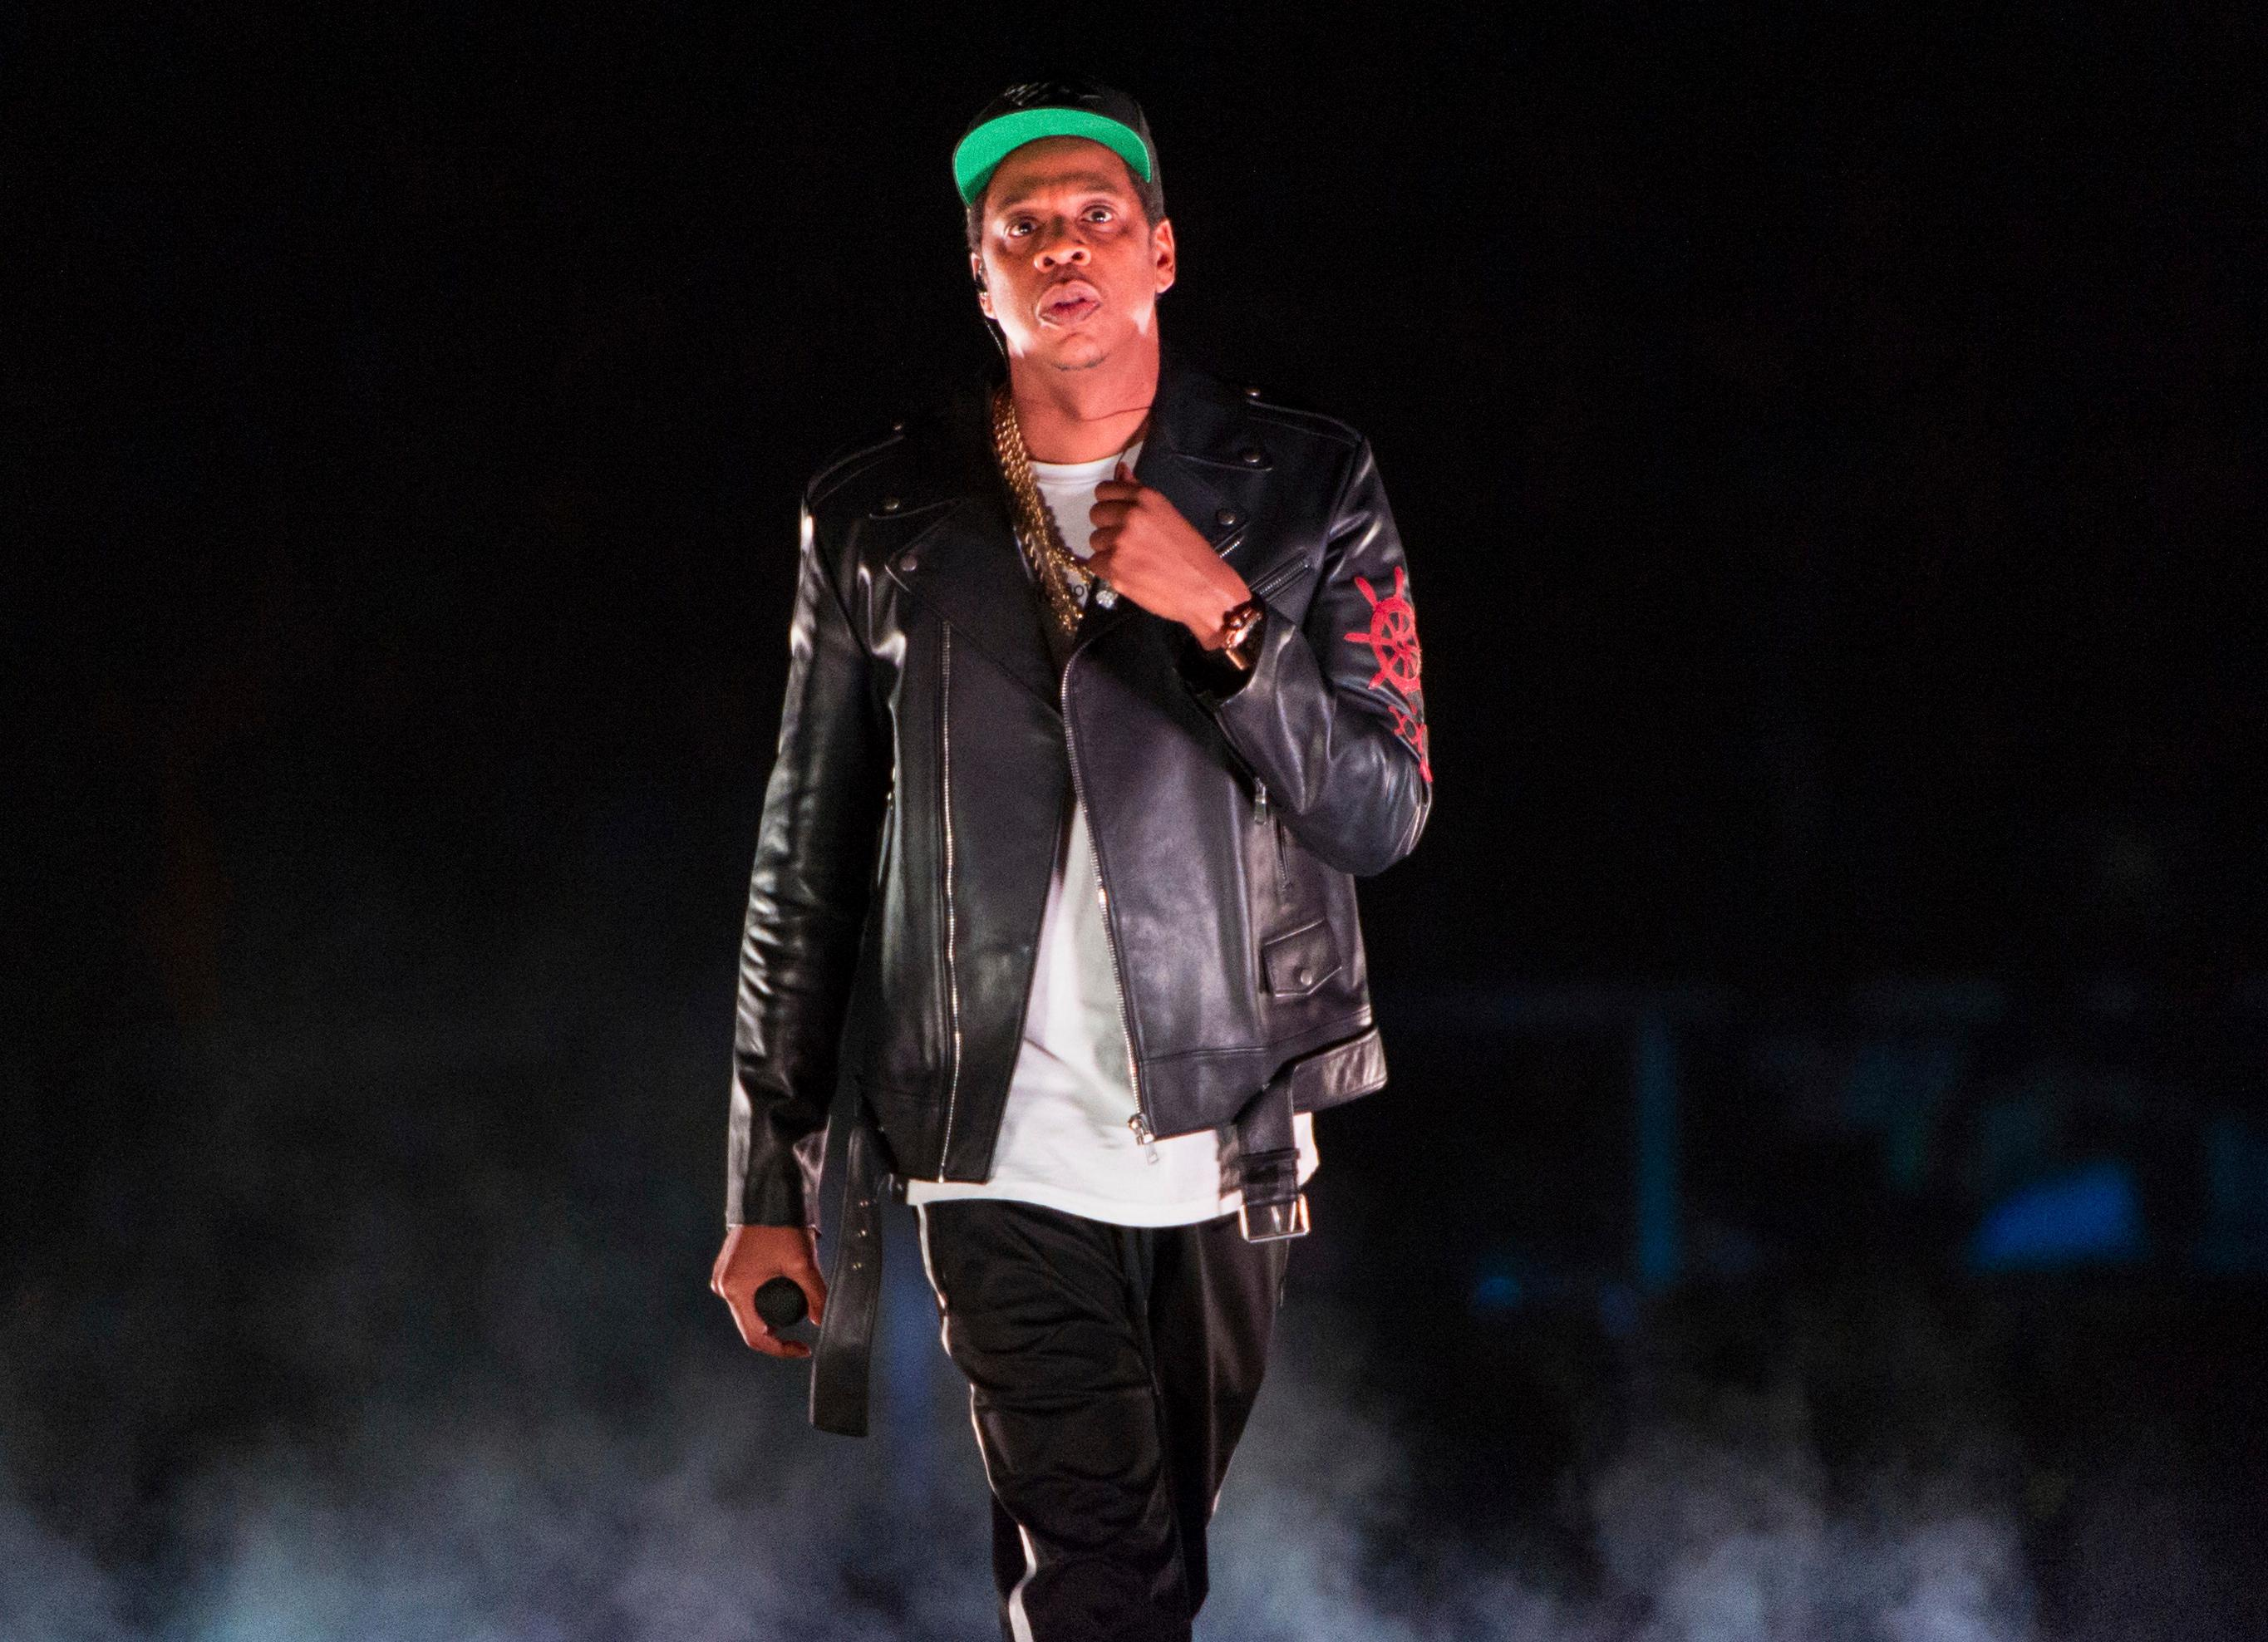 FILE - In this Nov. 26, 2017 file photo, Jay-Z performs on the 4:44 Tour at Barclays Center in New York. (Photo by Scott Roth/Invision/AP, File)